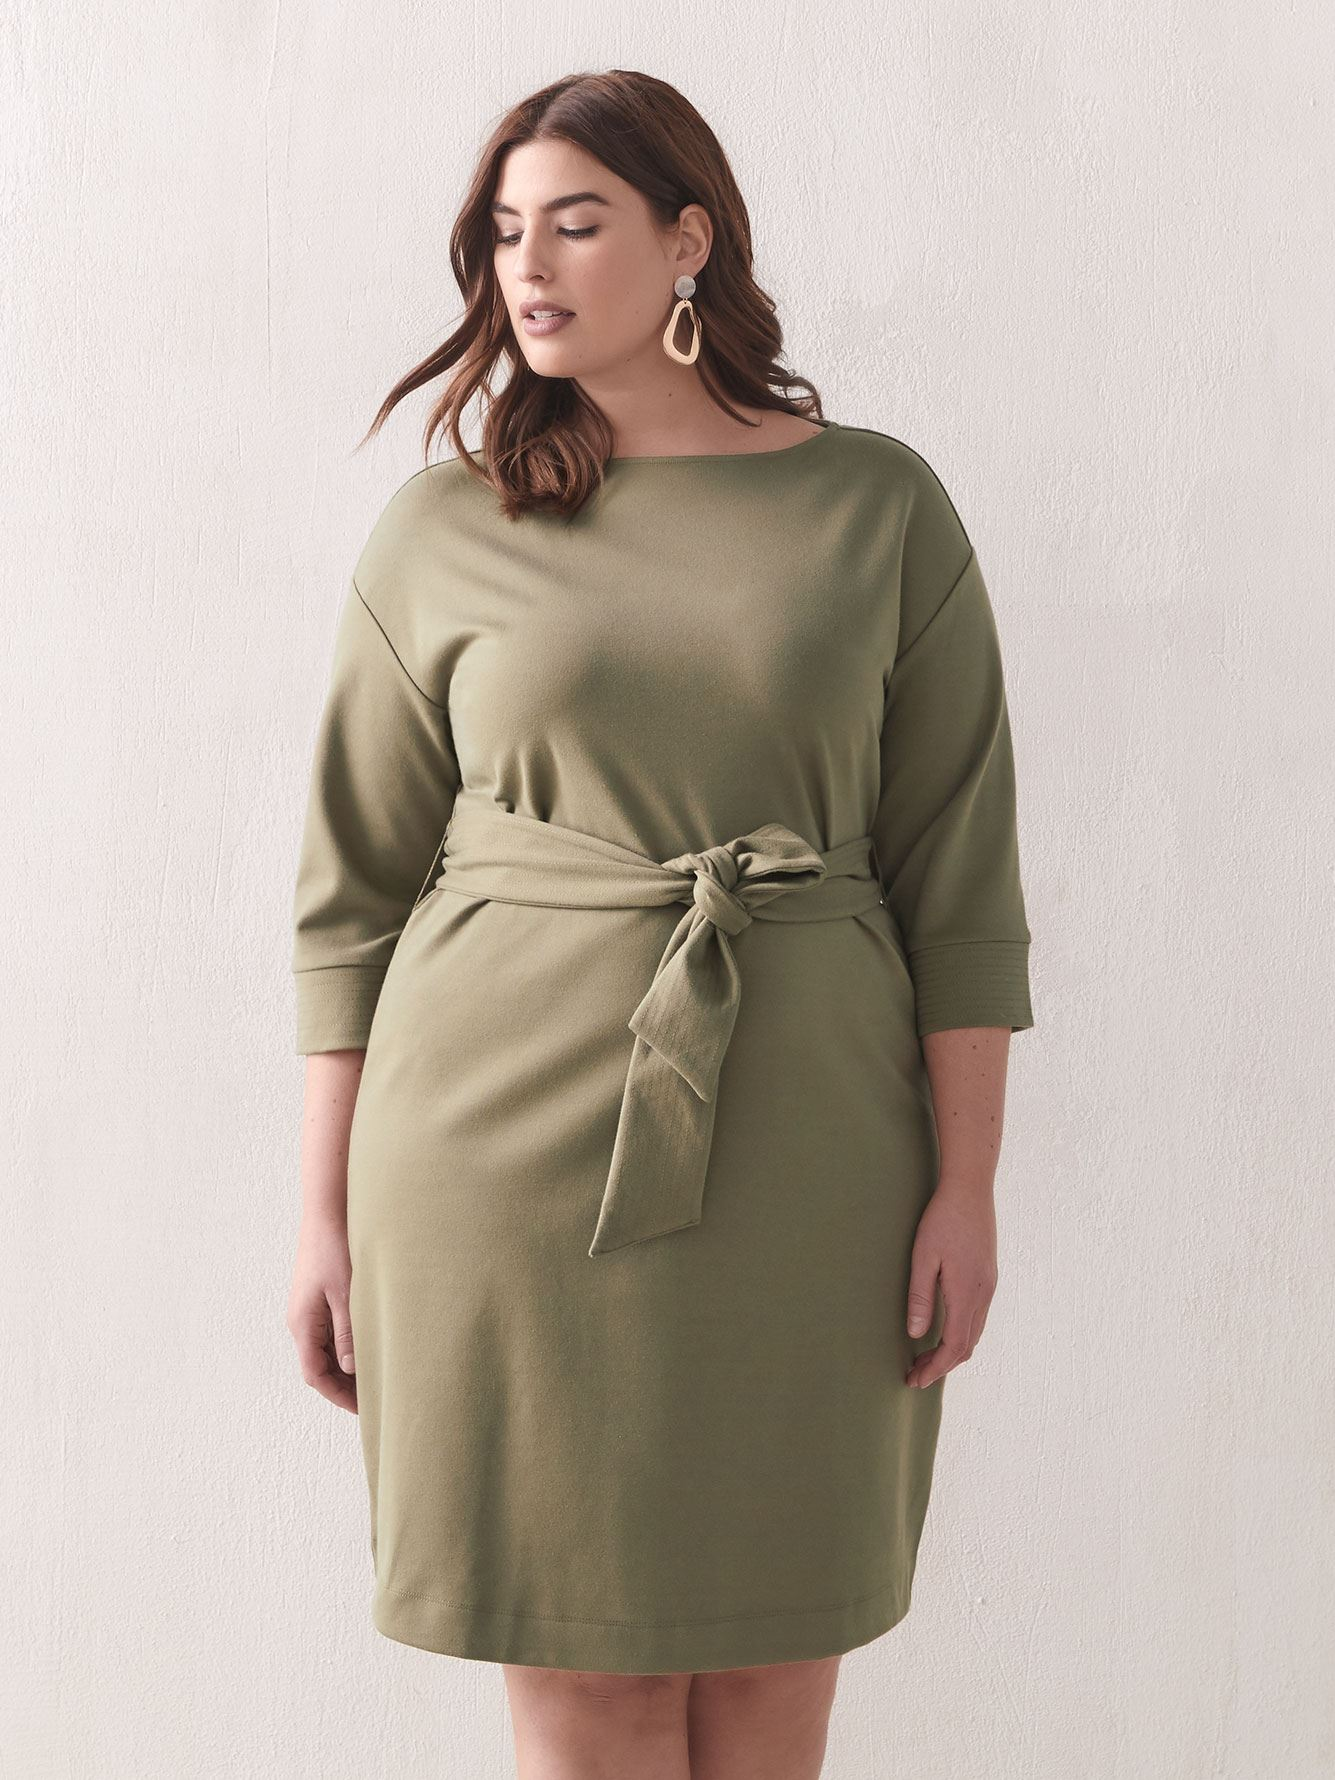 Belted Boat-Neck Dress - Addition Elle